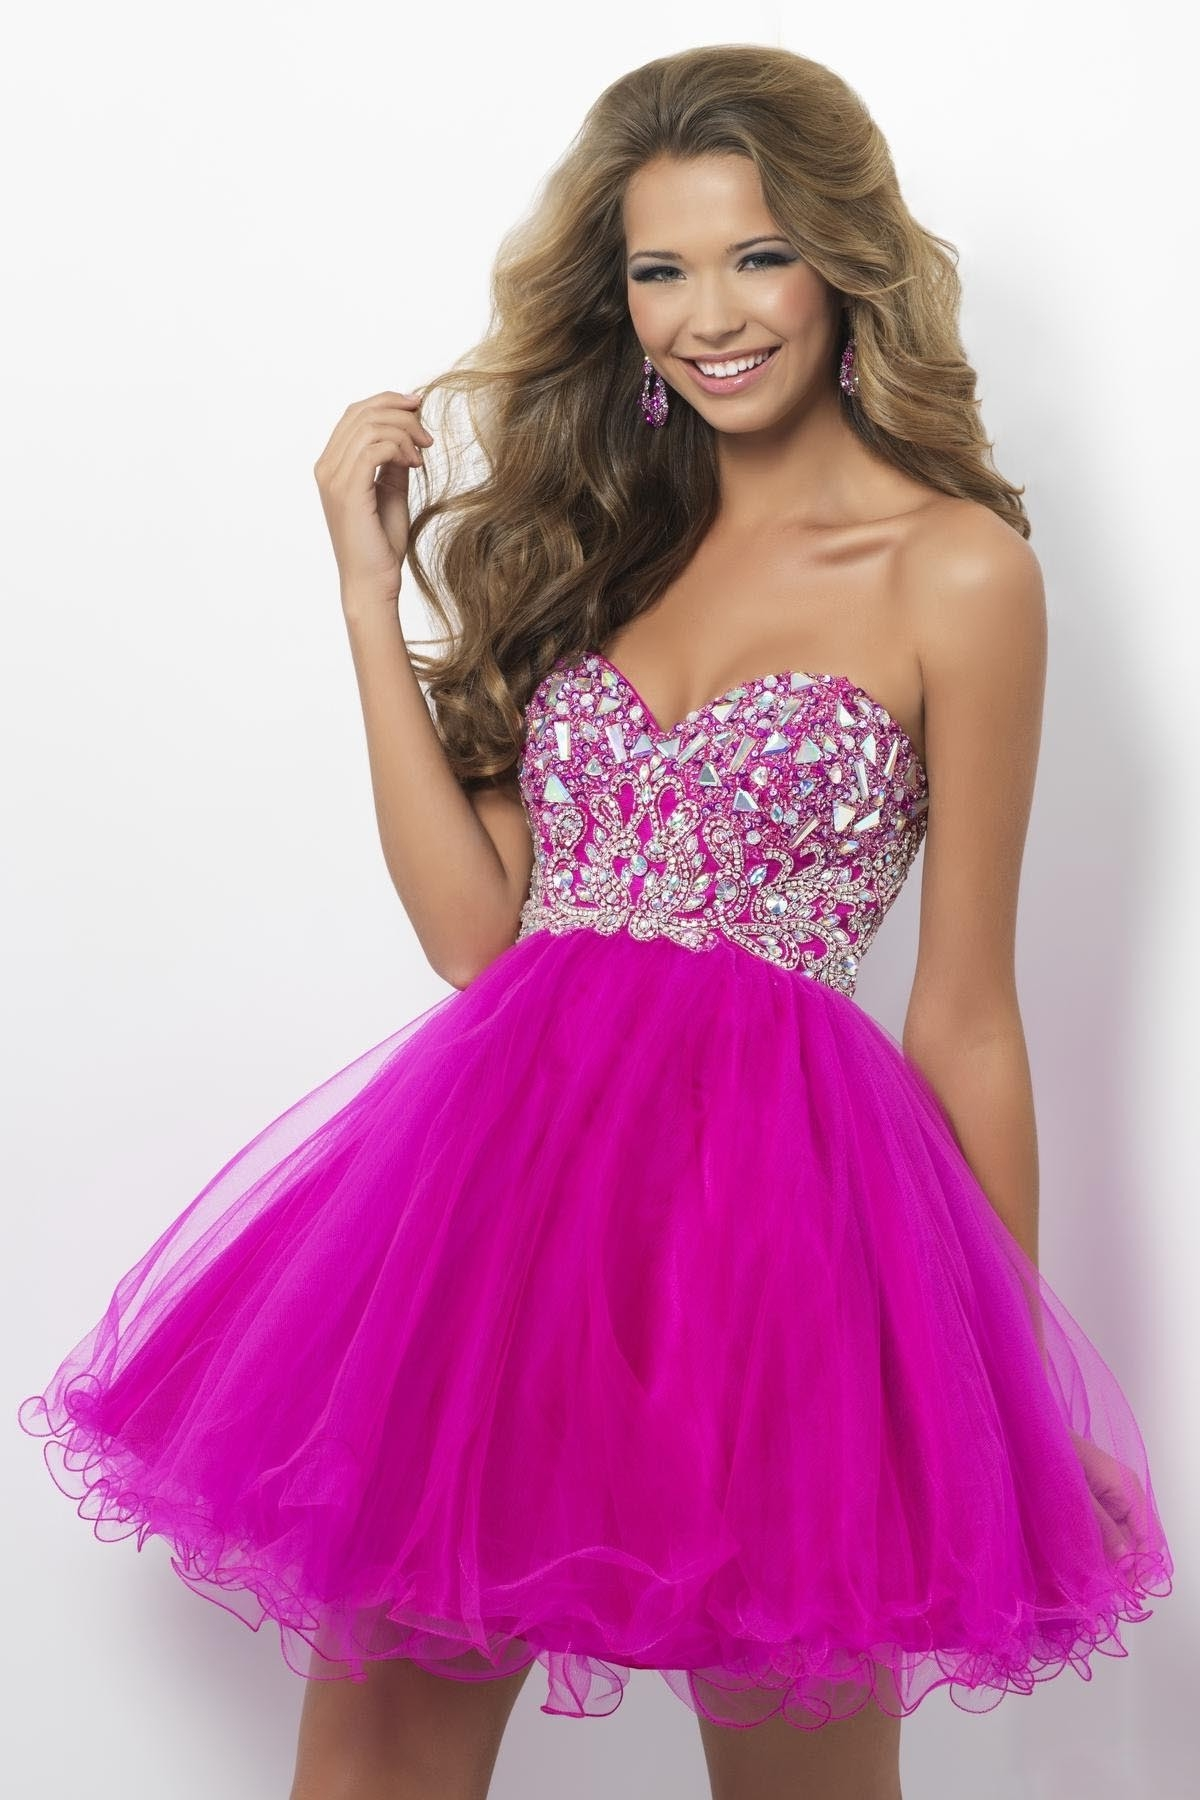 Tulle Dress Picture Collection Dressedupgirl Com